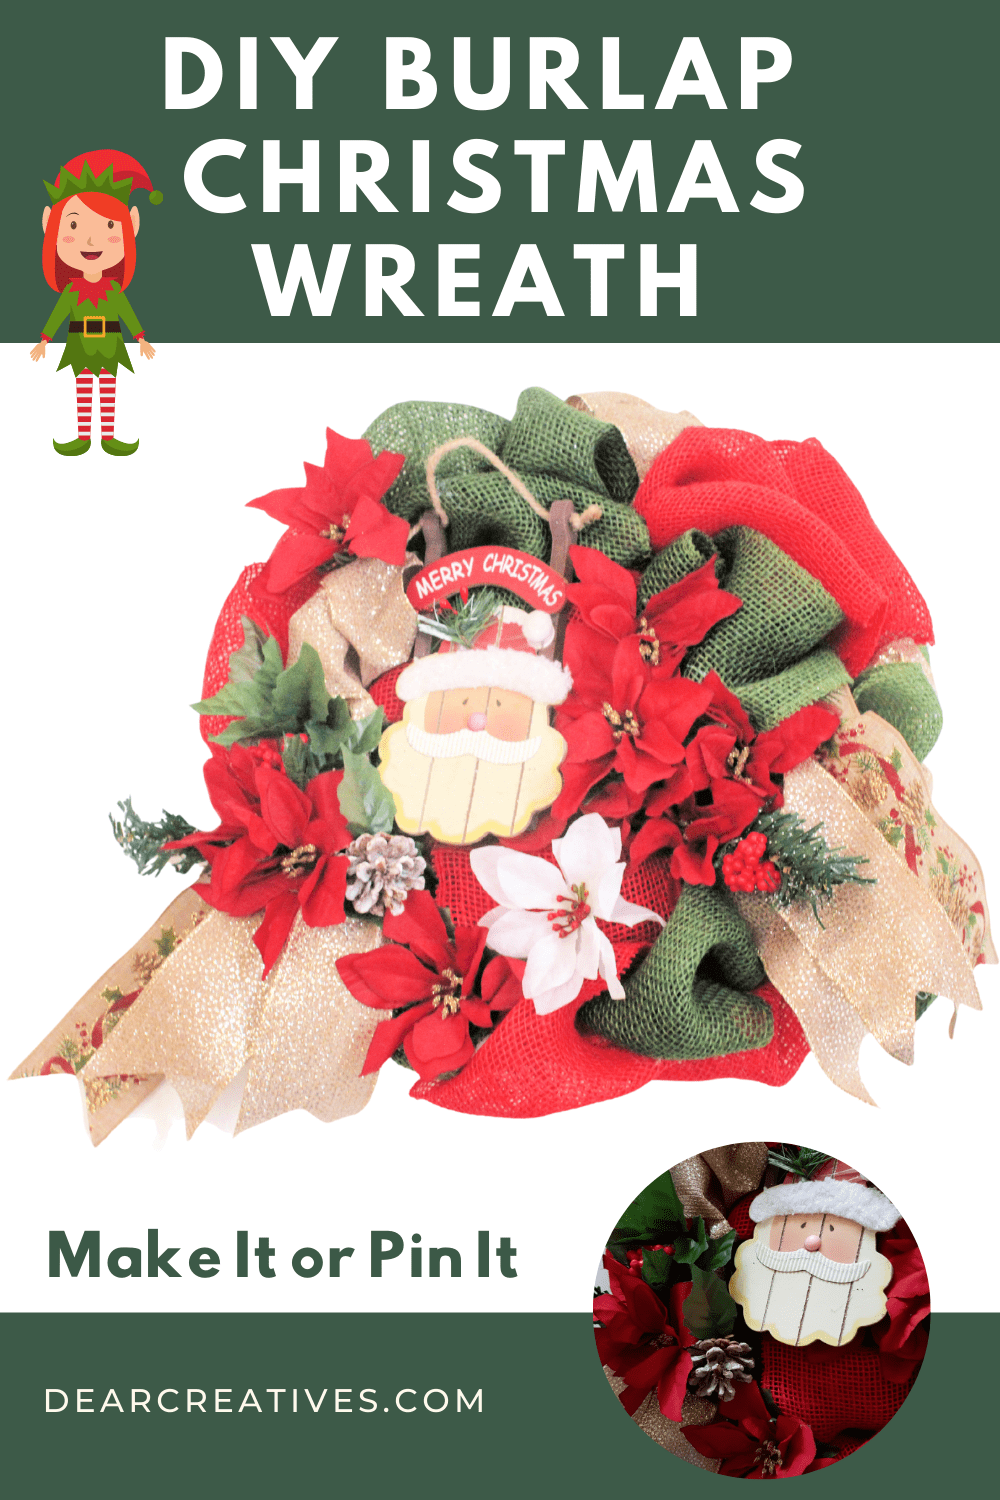 DIY Burlap Christmas Wreath + Tips and Resources